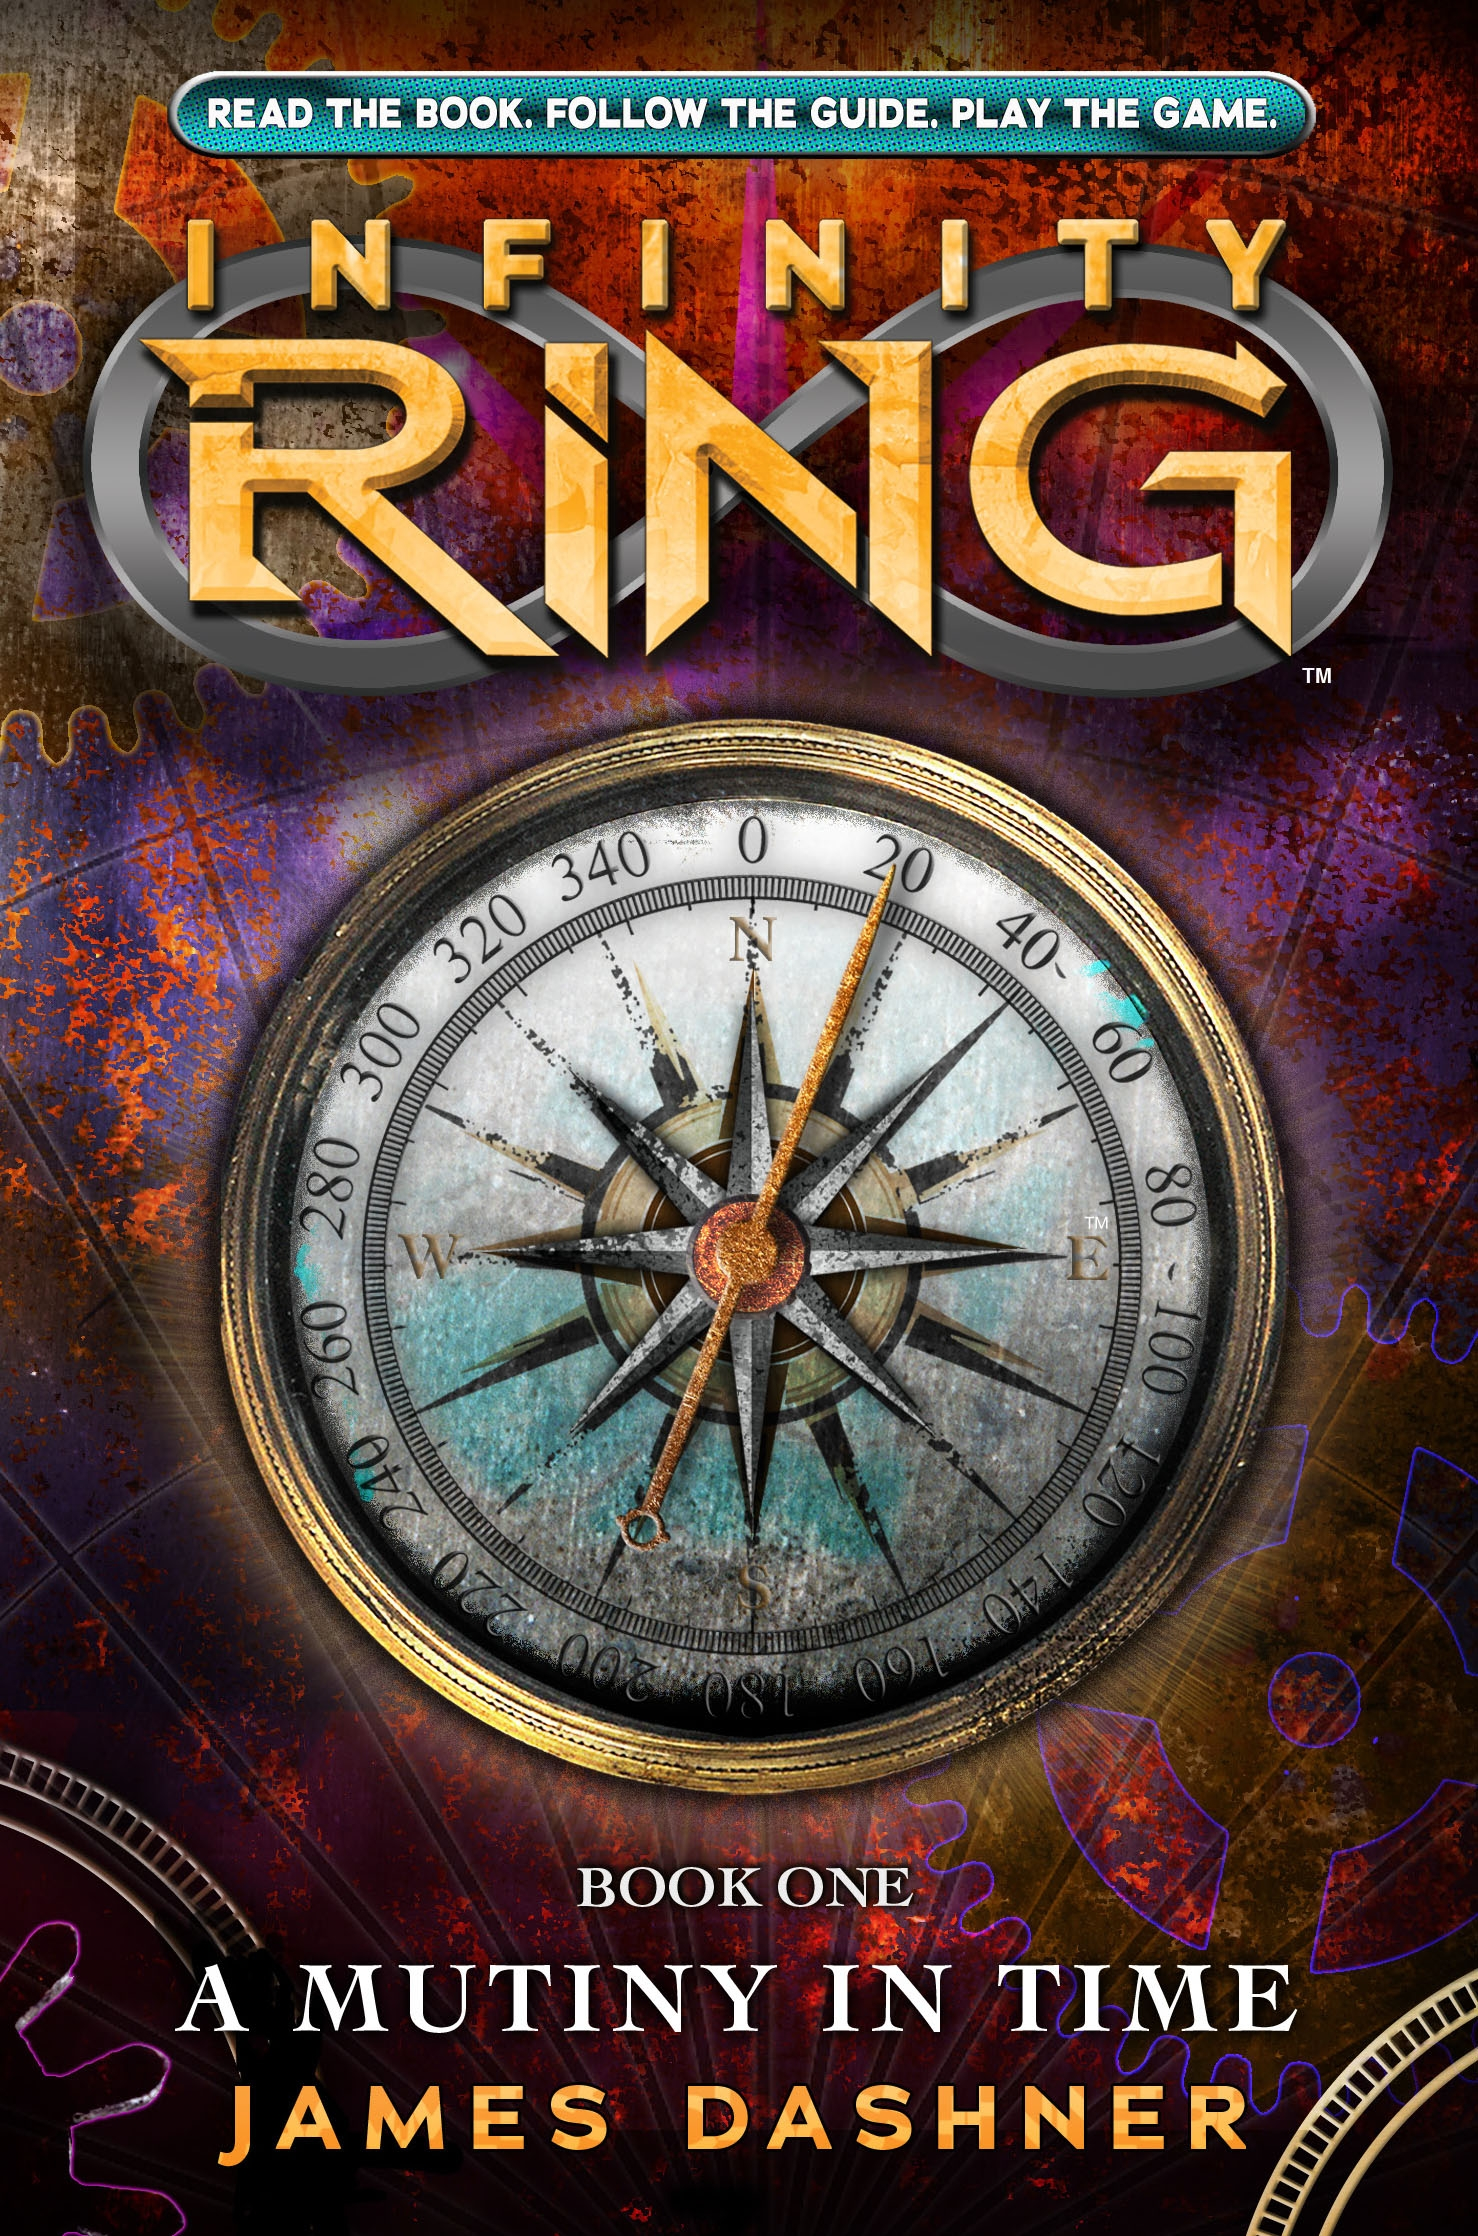 A Mutiny in Time cover reveal! | Kirbside Infinity Ring Book Series